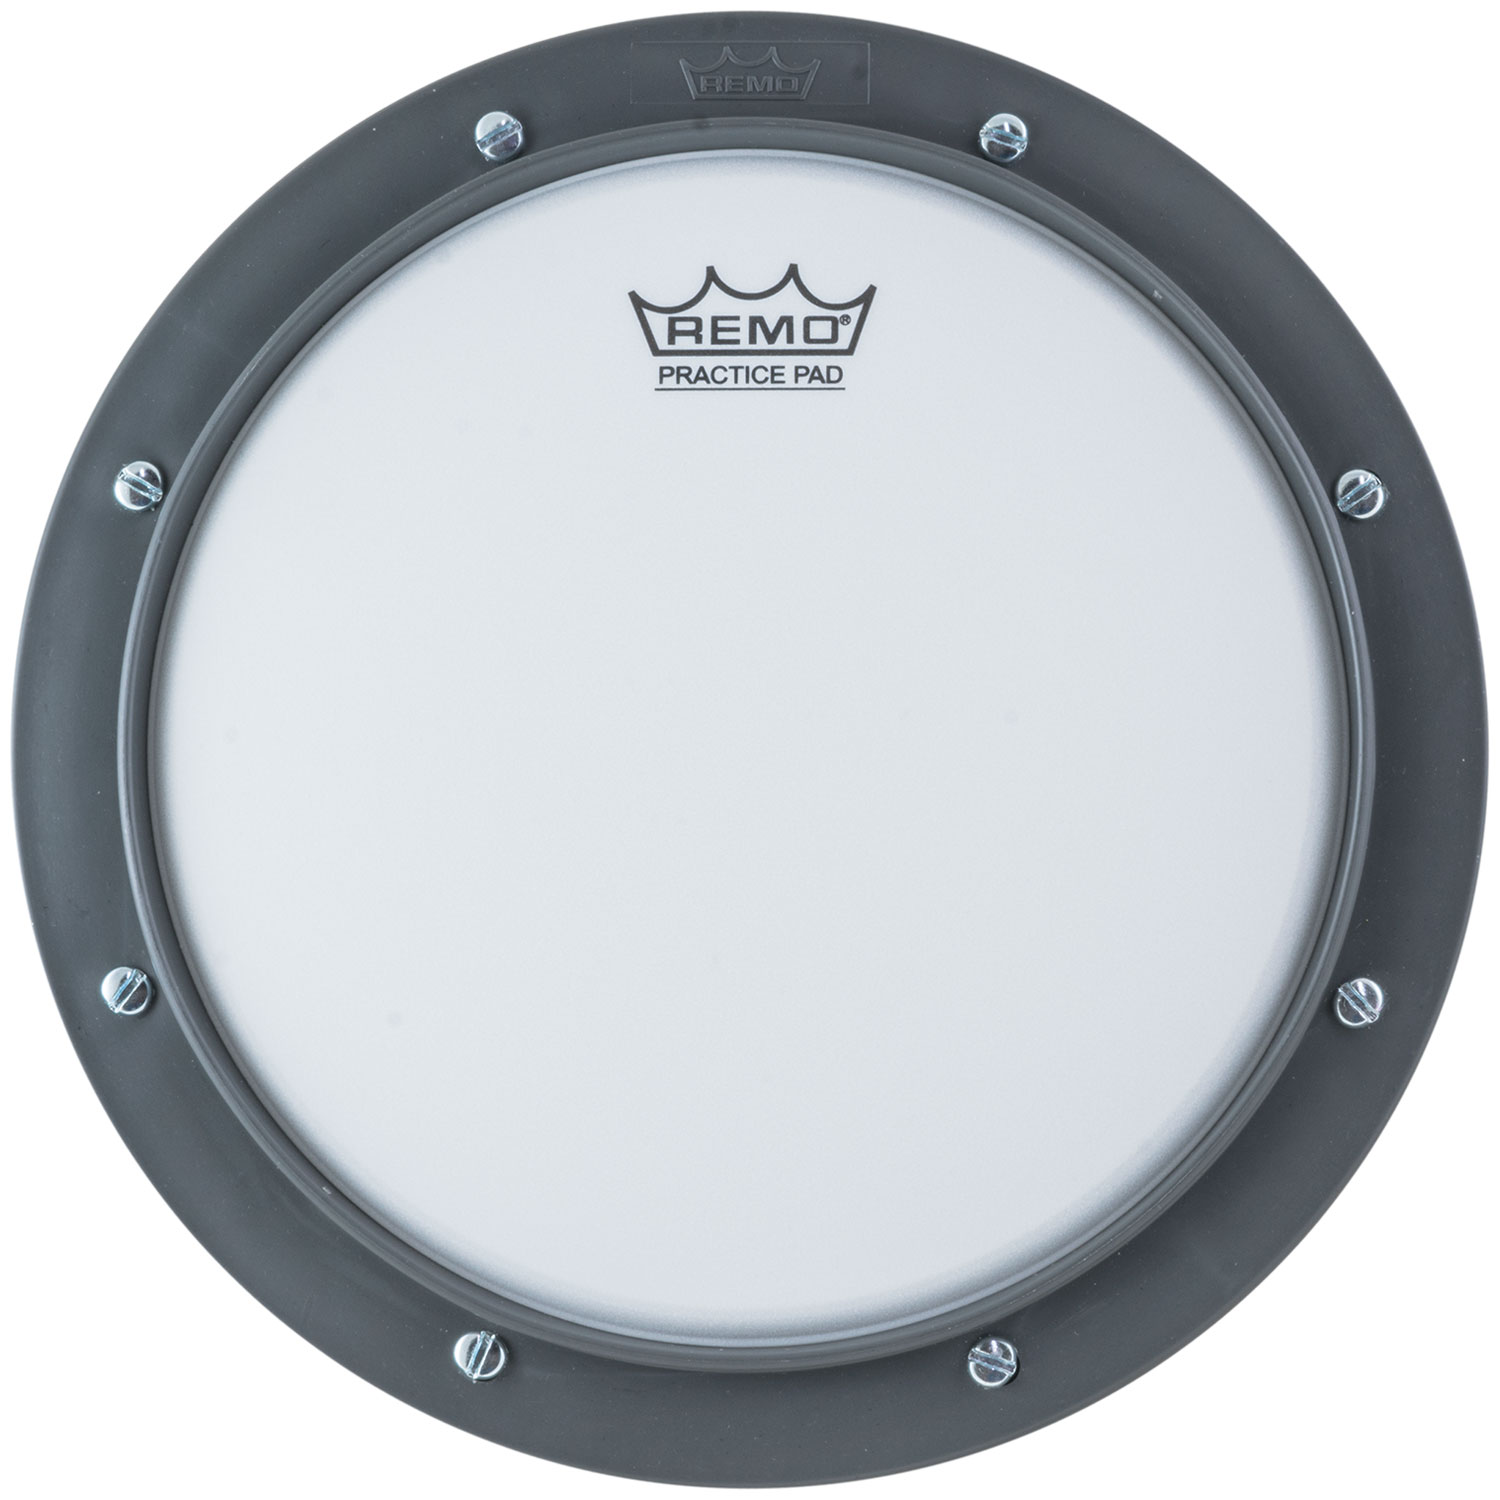 "Remo 10"" Tunable Practice Pad"